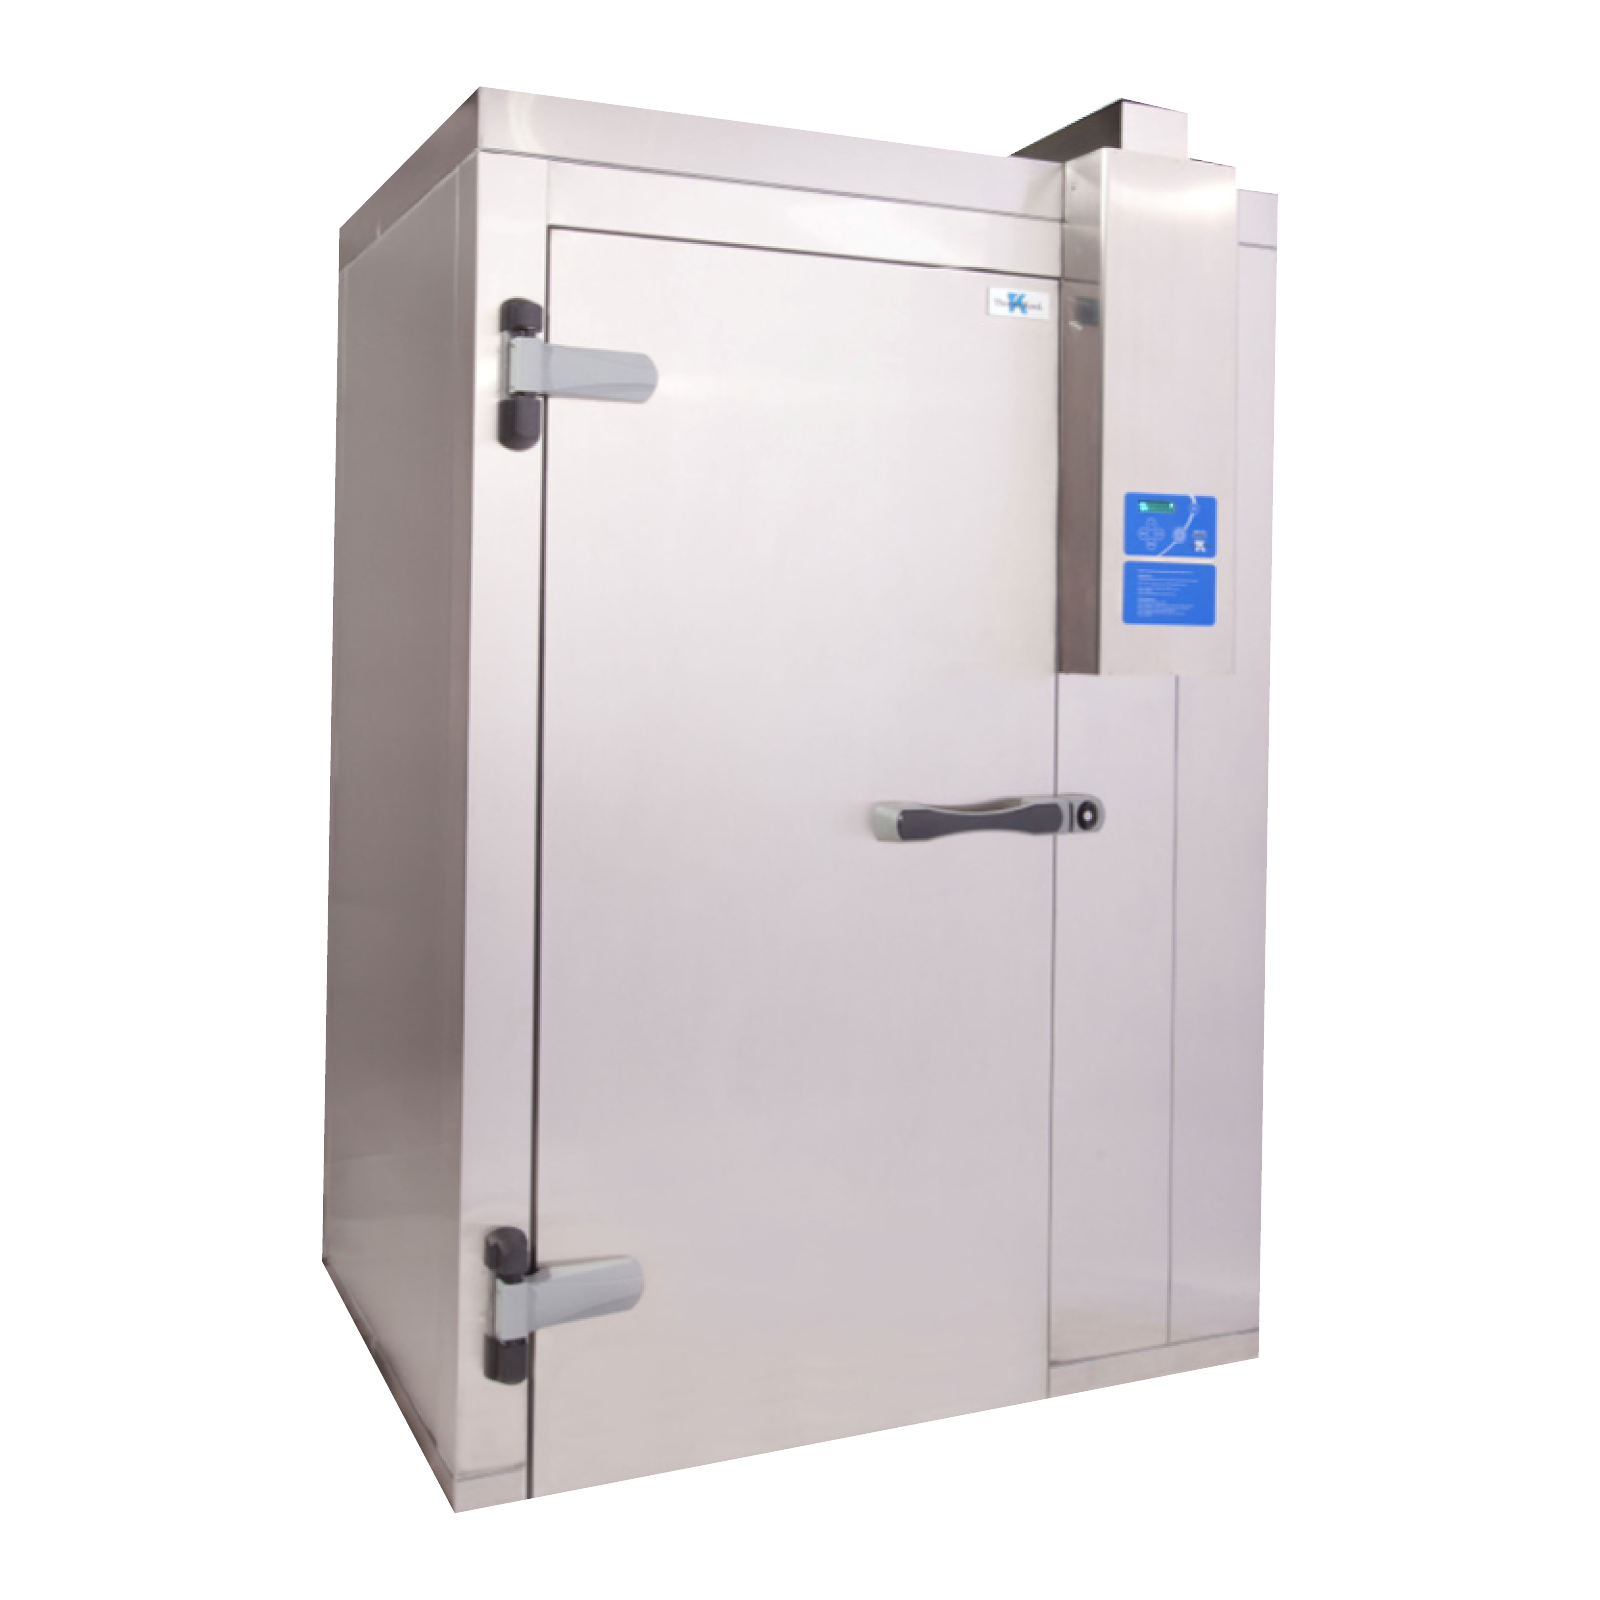 Image of the TK26BCF-1 blast chiller by Thermo-Kool